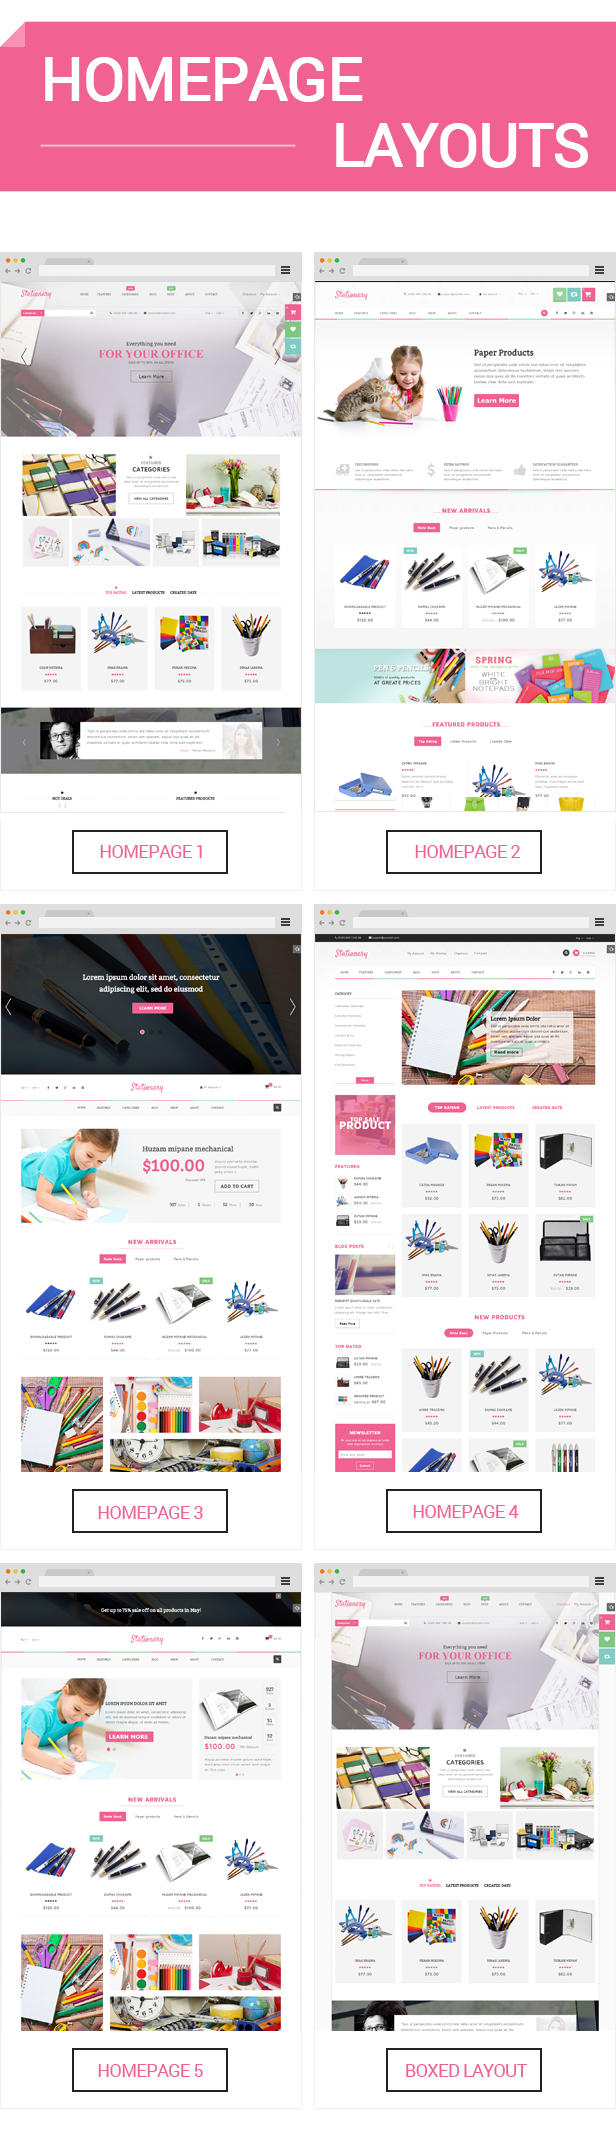 Stationery - Homepage